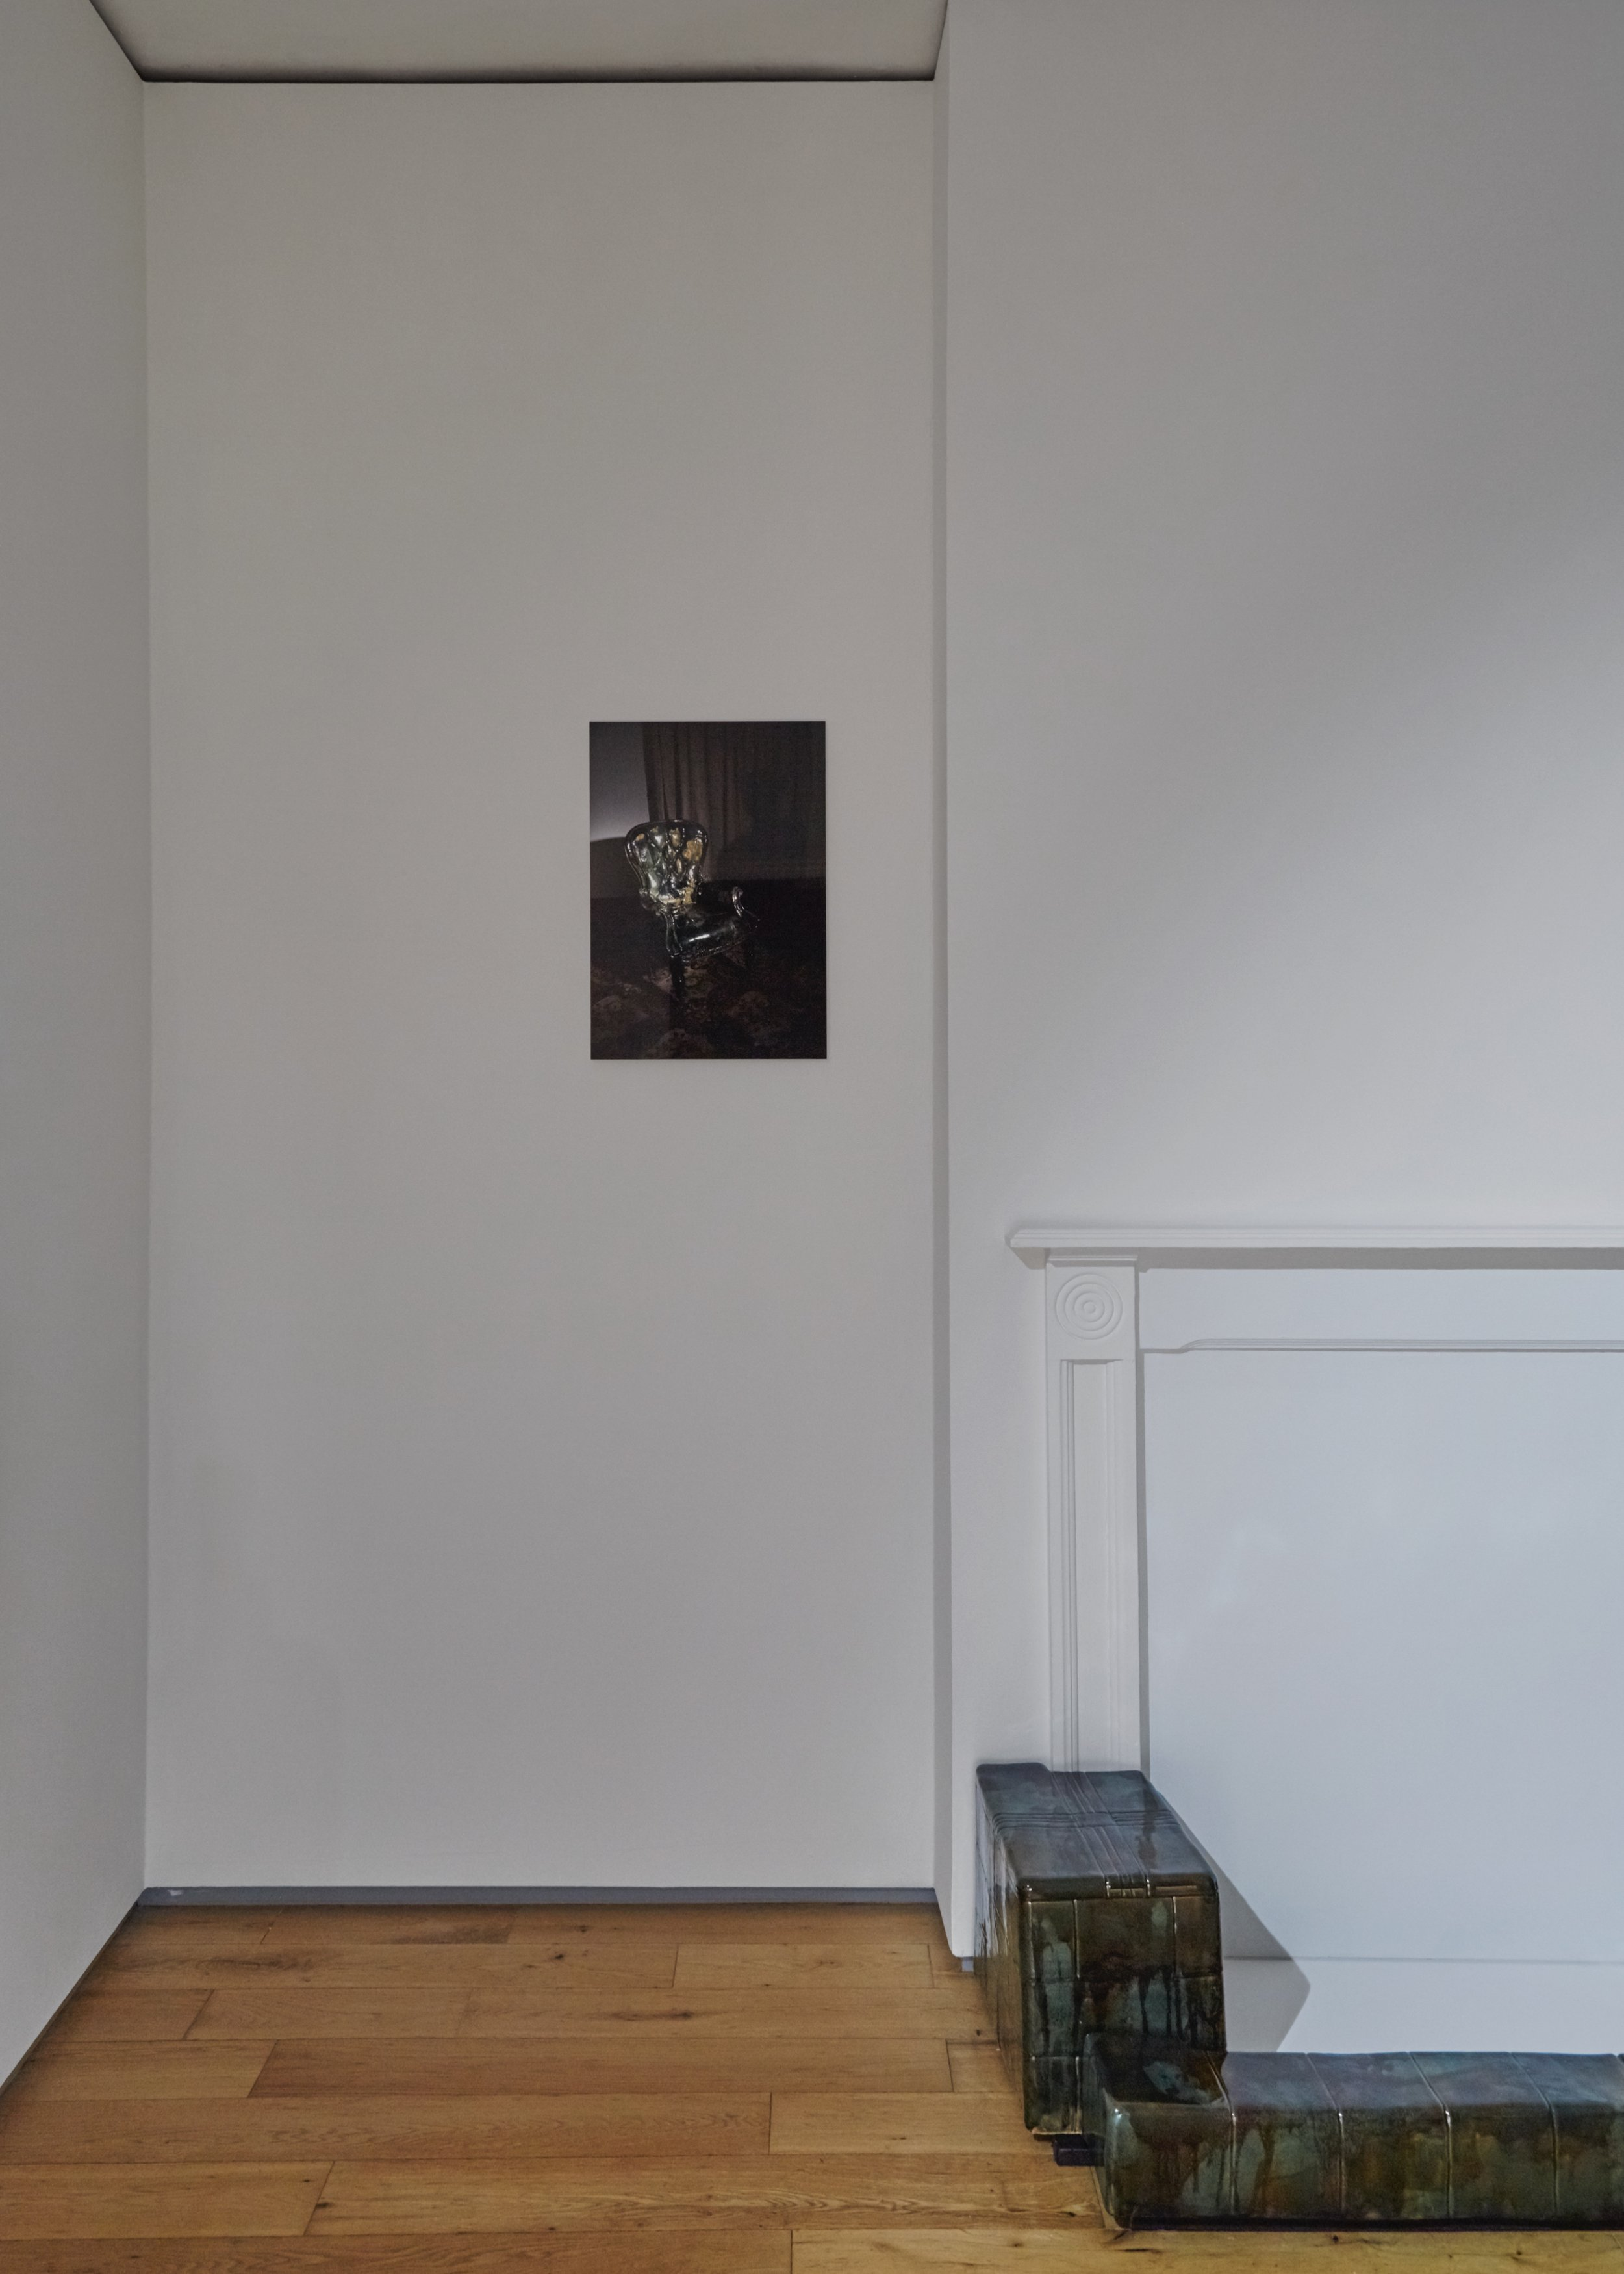 Visitor,  2019 Fujiflex print on aluminium dibond 36 x 50 cm   Strange Comfort (fire surround),  2019 Stoneware ceramic and glaze 28 x 135 x 52 cm